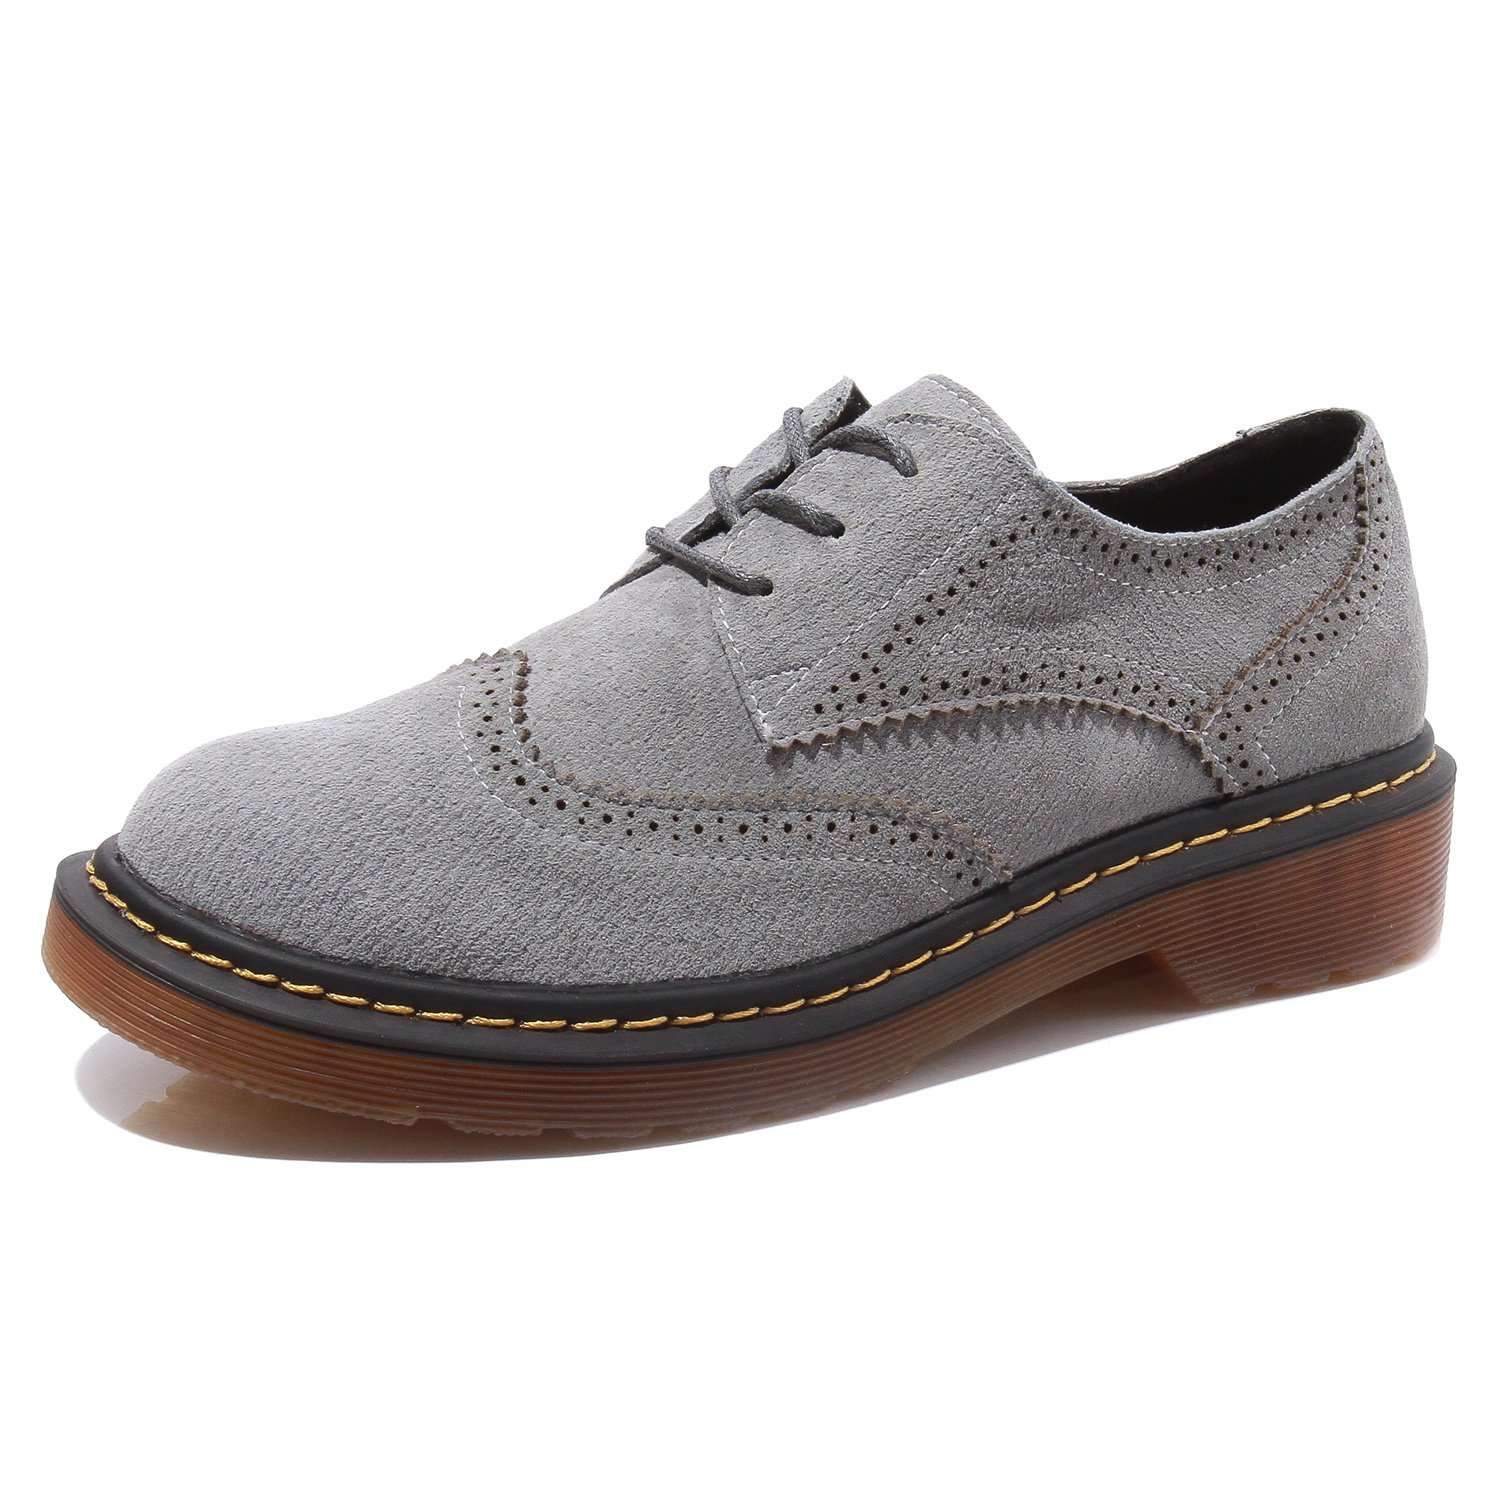 Smilun Lady¡¯s Full Brogue Suede Derby Shoes Classic Flats Round Toe B01M00ZICG 8.5 B(M) US|Grey